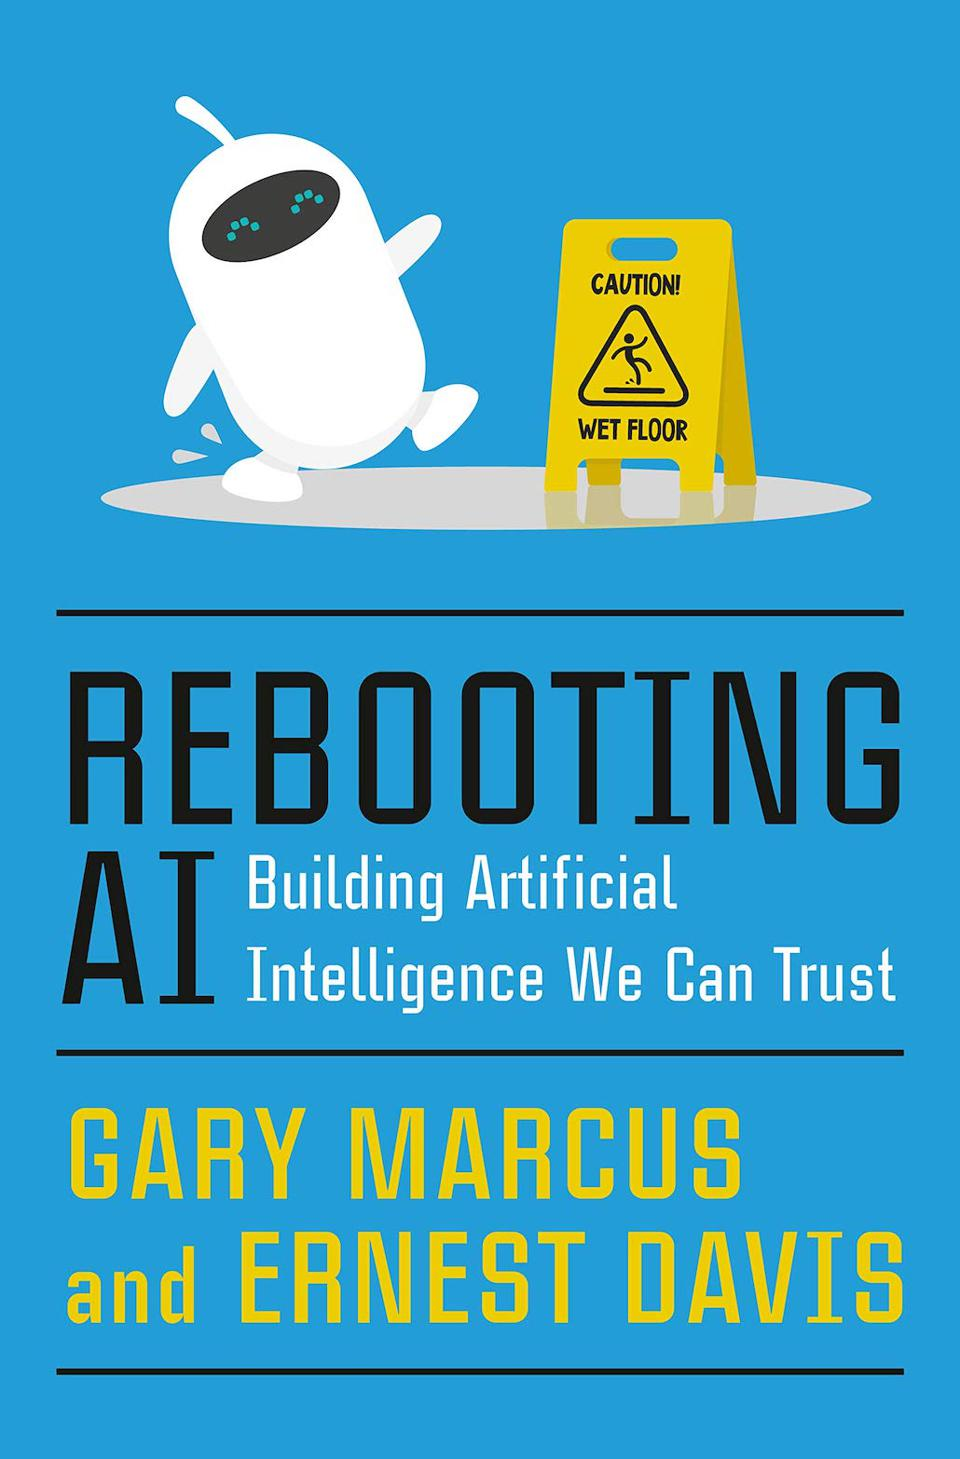 Rebooting AI: Building Artificial Intelligence We Can Trust by Gary Marcus and Ernest Davis